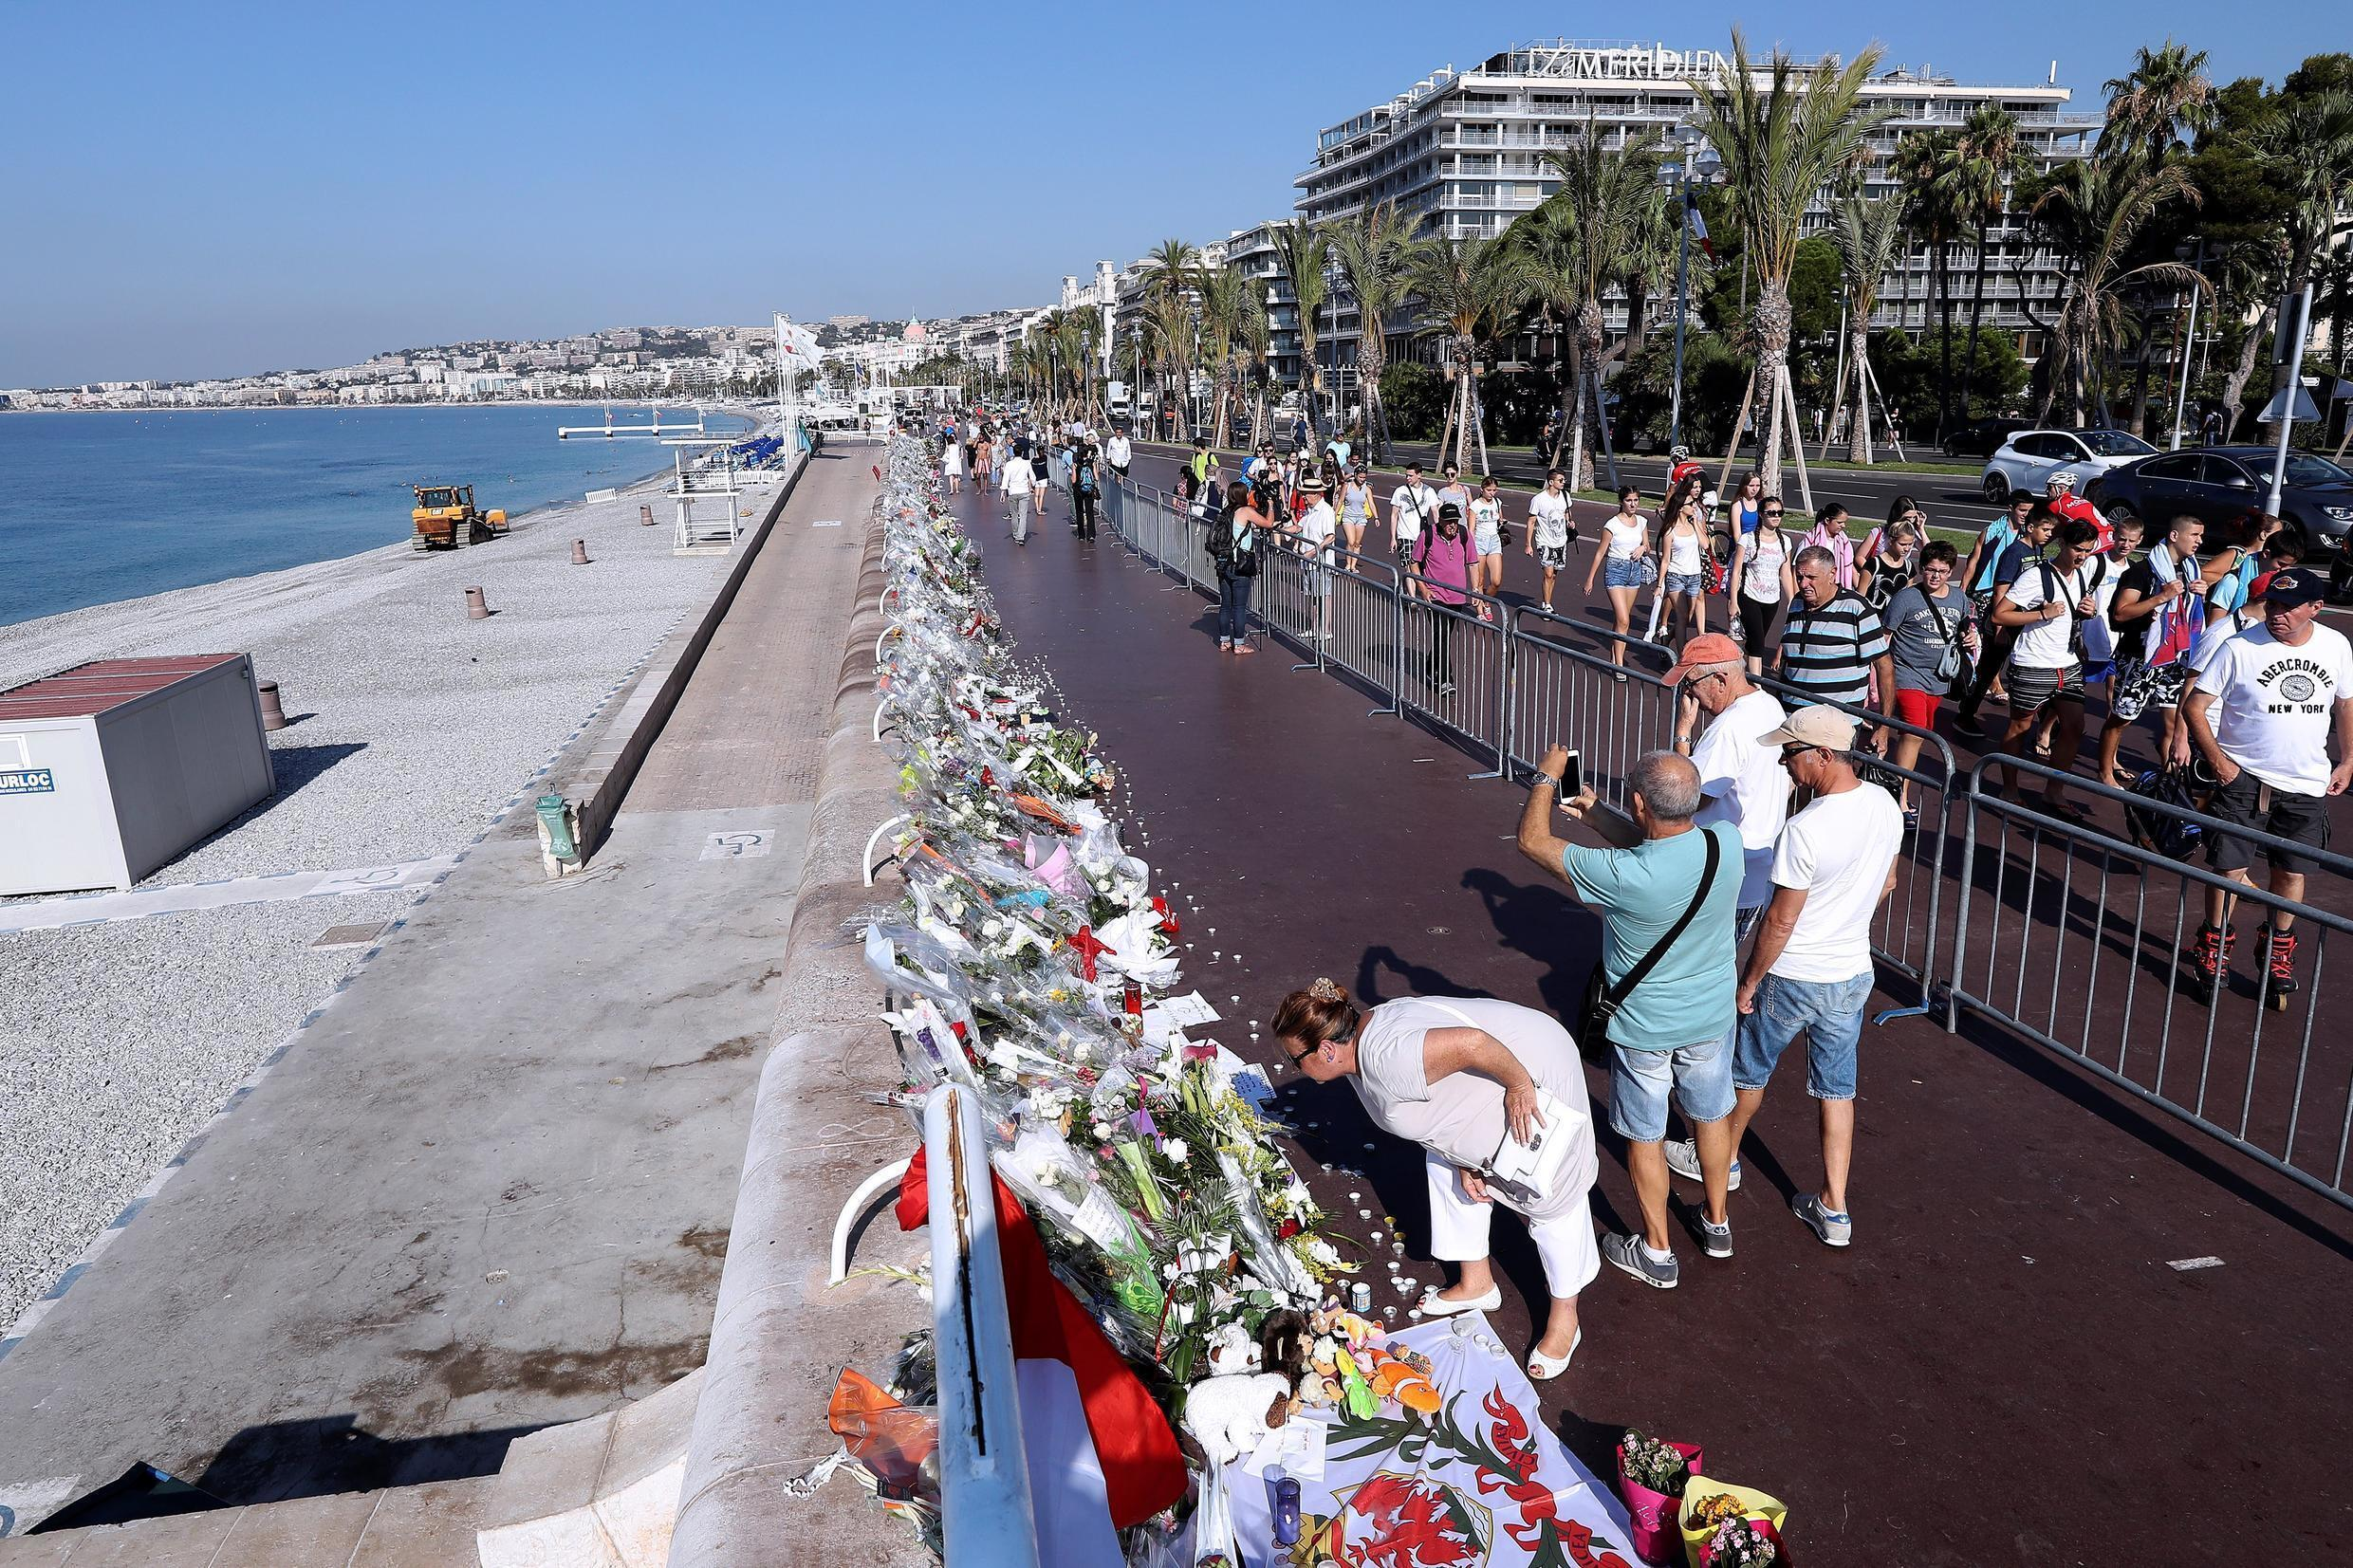 This file picture shows people standing by the makeshift memorial in tribute to the victims of the terror attack in Nice.